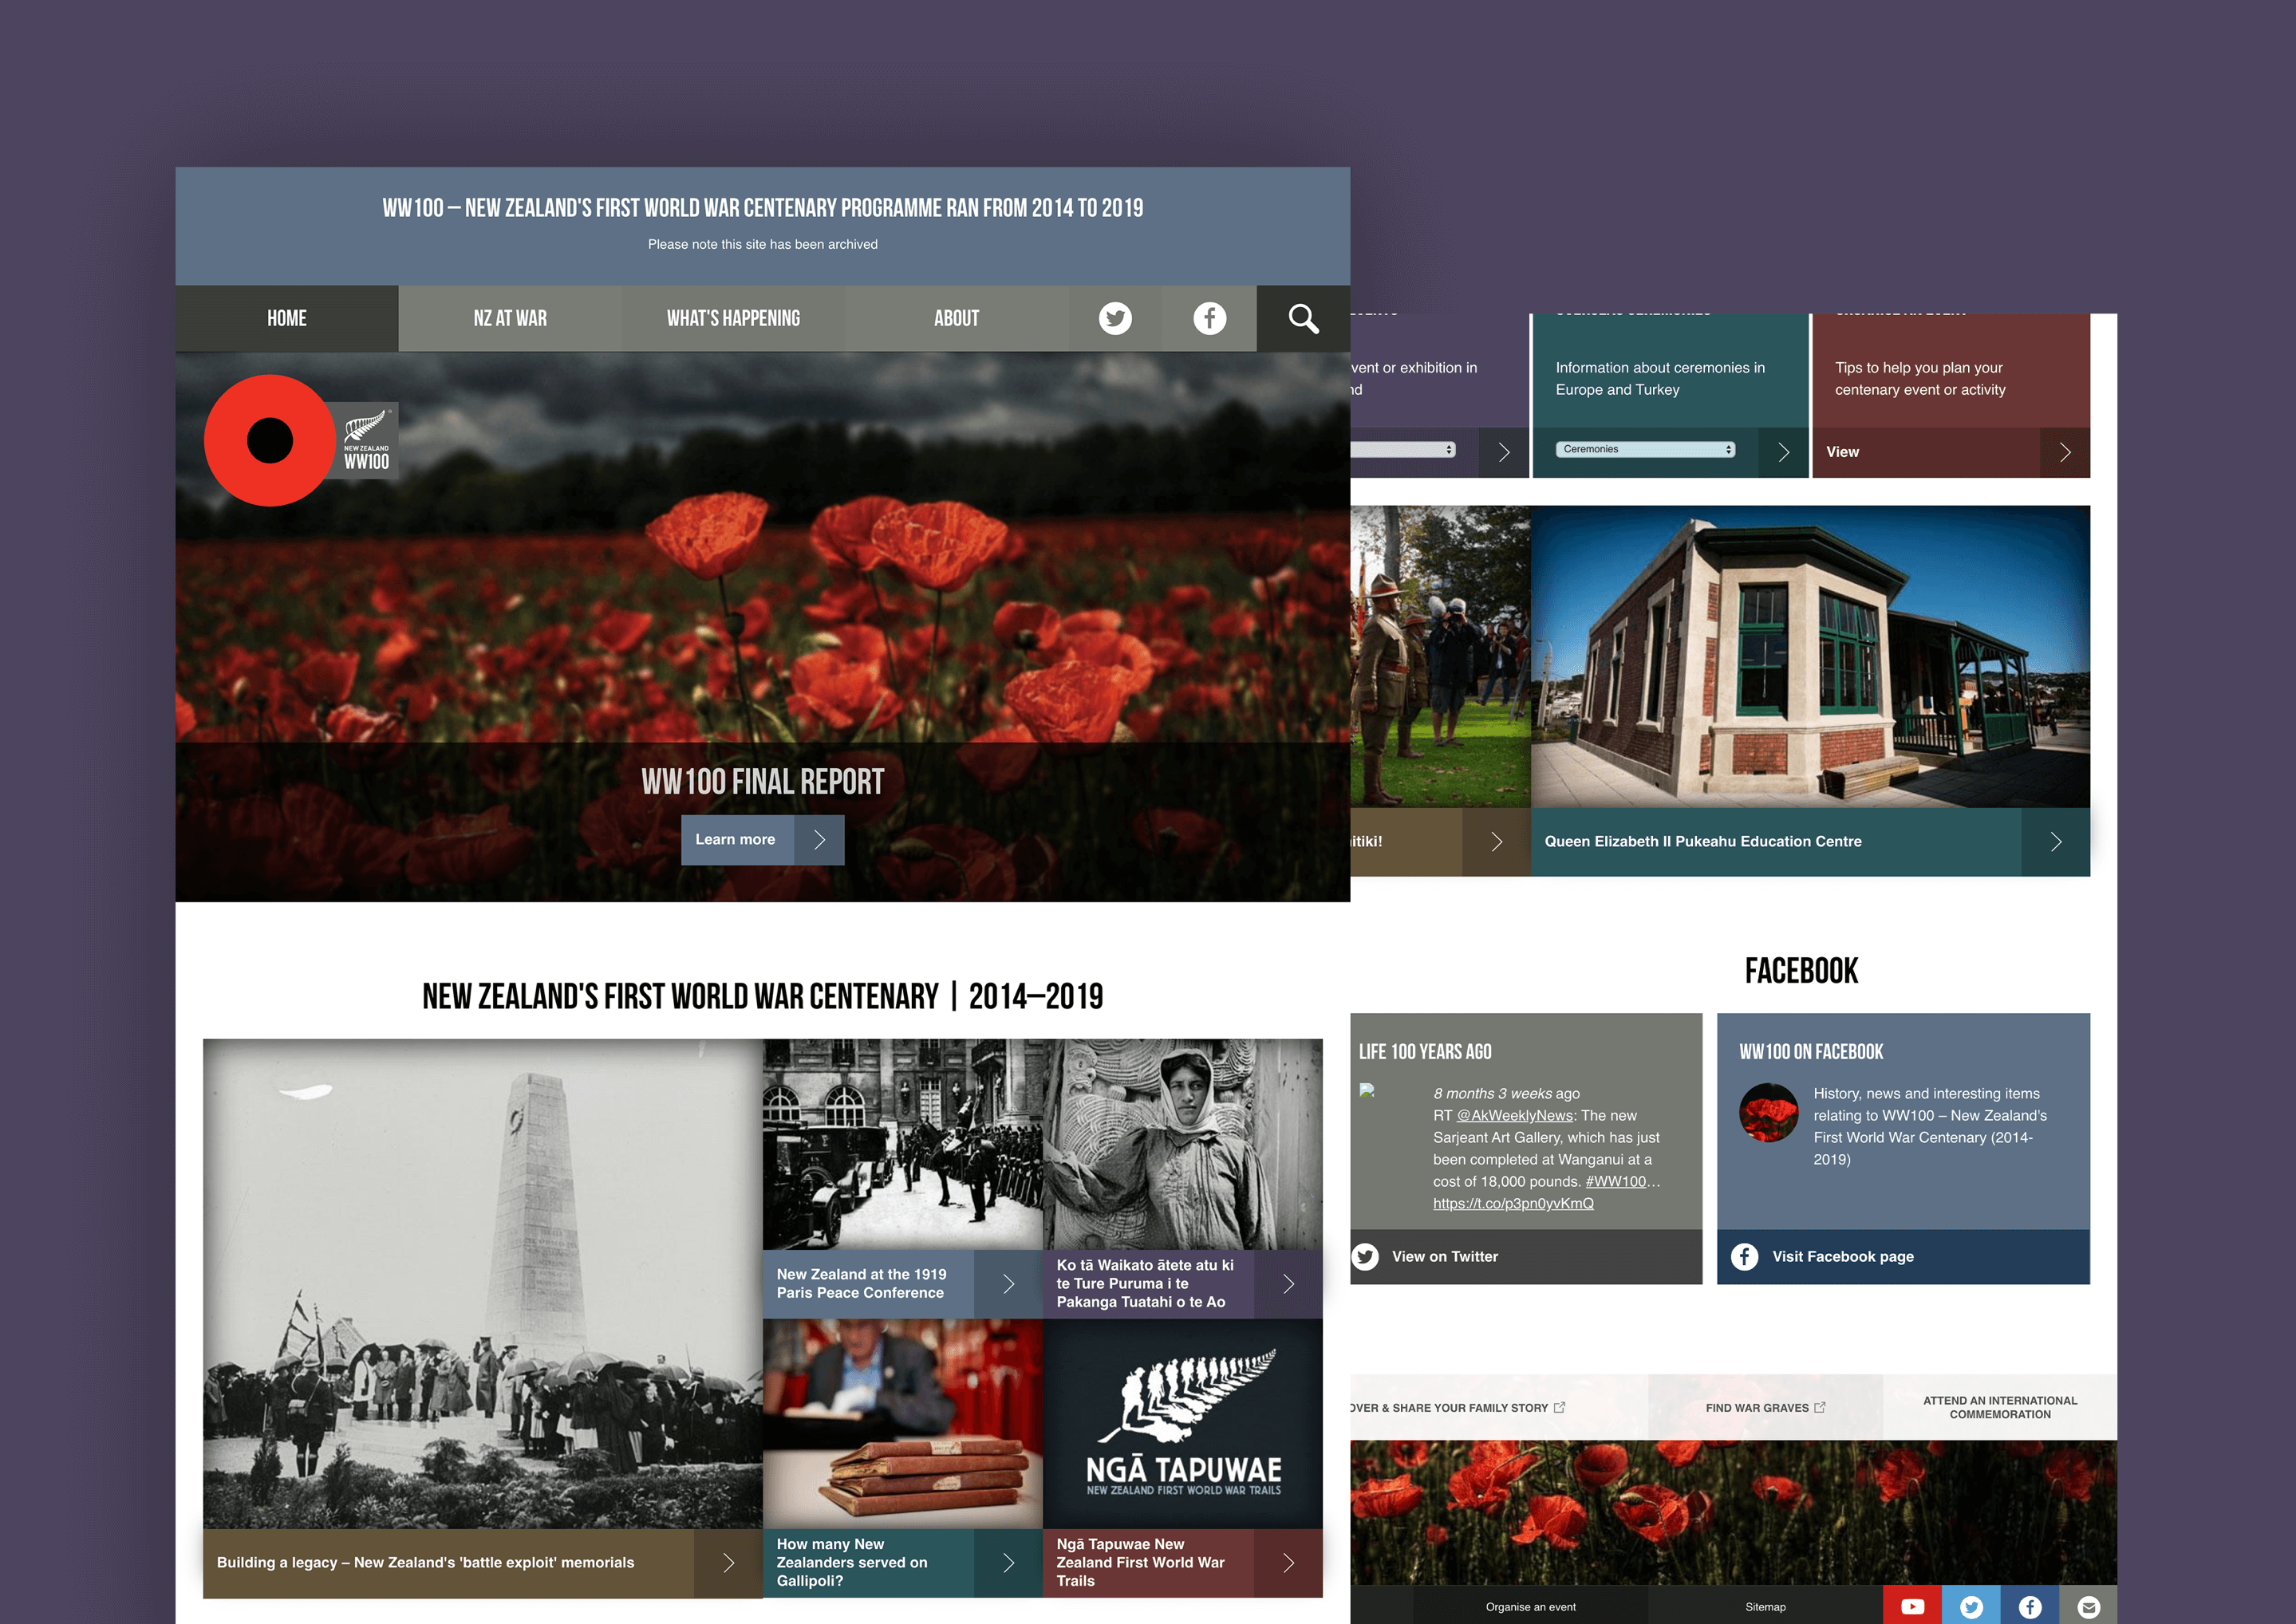 Screens showing the results of the website design and development work on the WWII website.